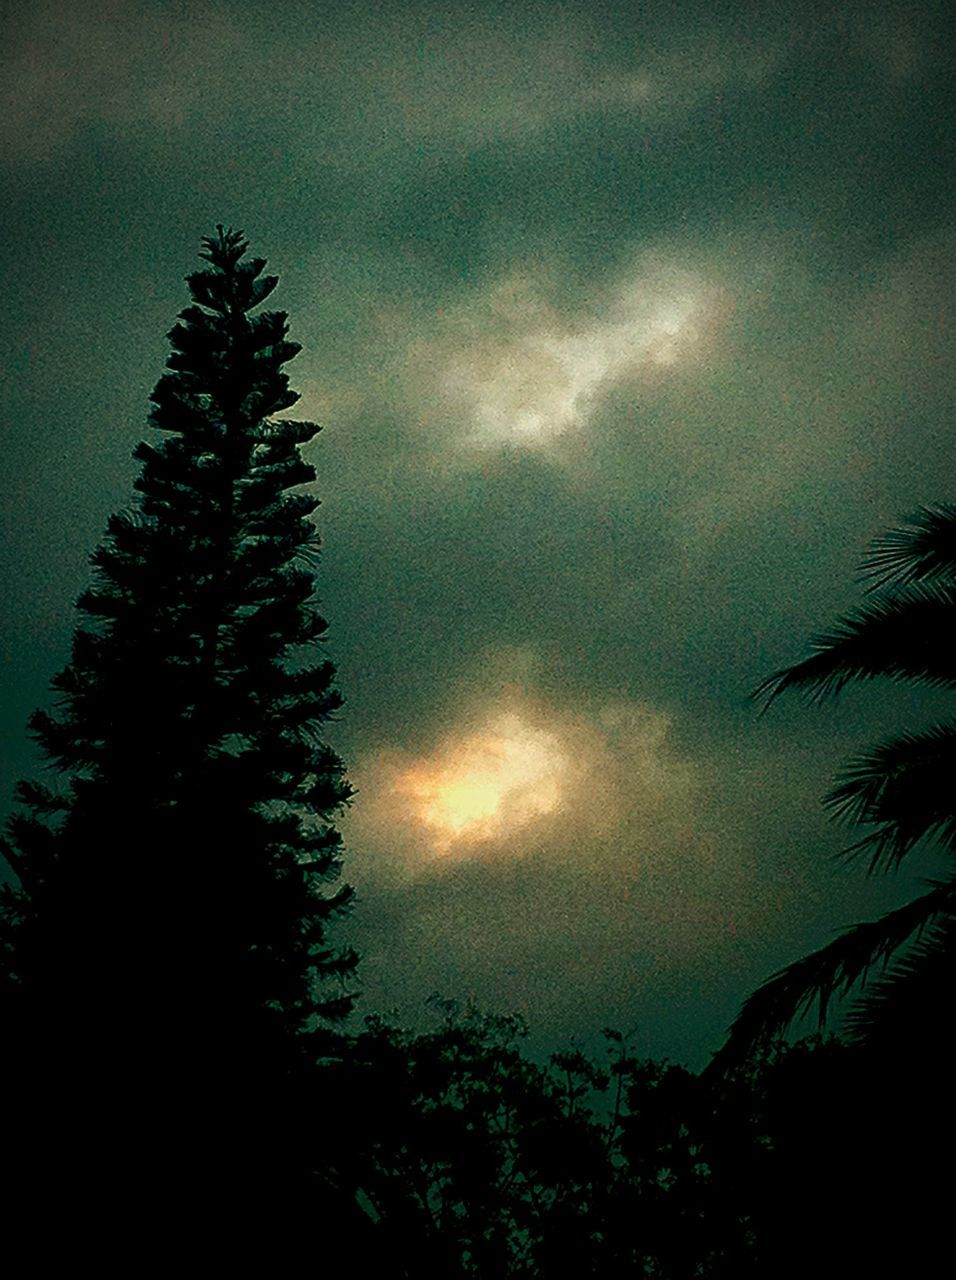 tree, nature, silhouette, low angle view, beauty in nature, sky, no people, growth, outdoors, cloud - sky, tranquility, scenics, sunset, night, palm tree